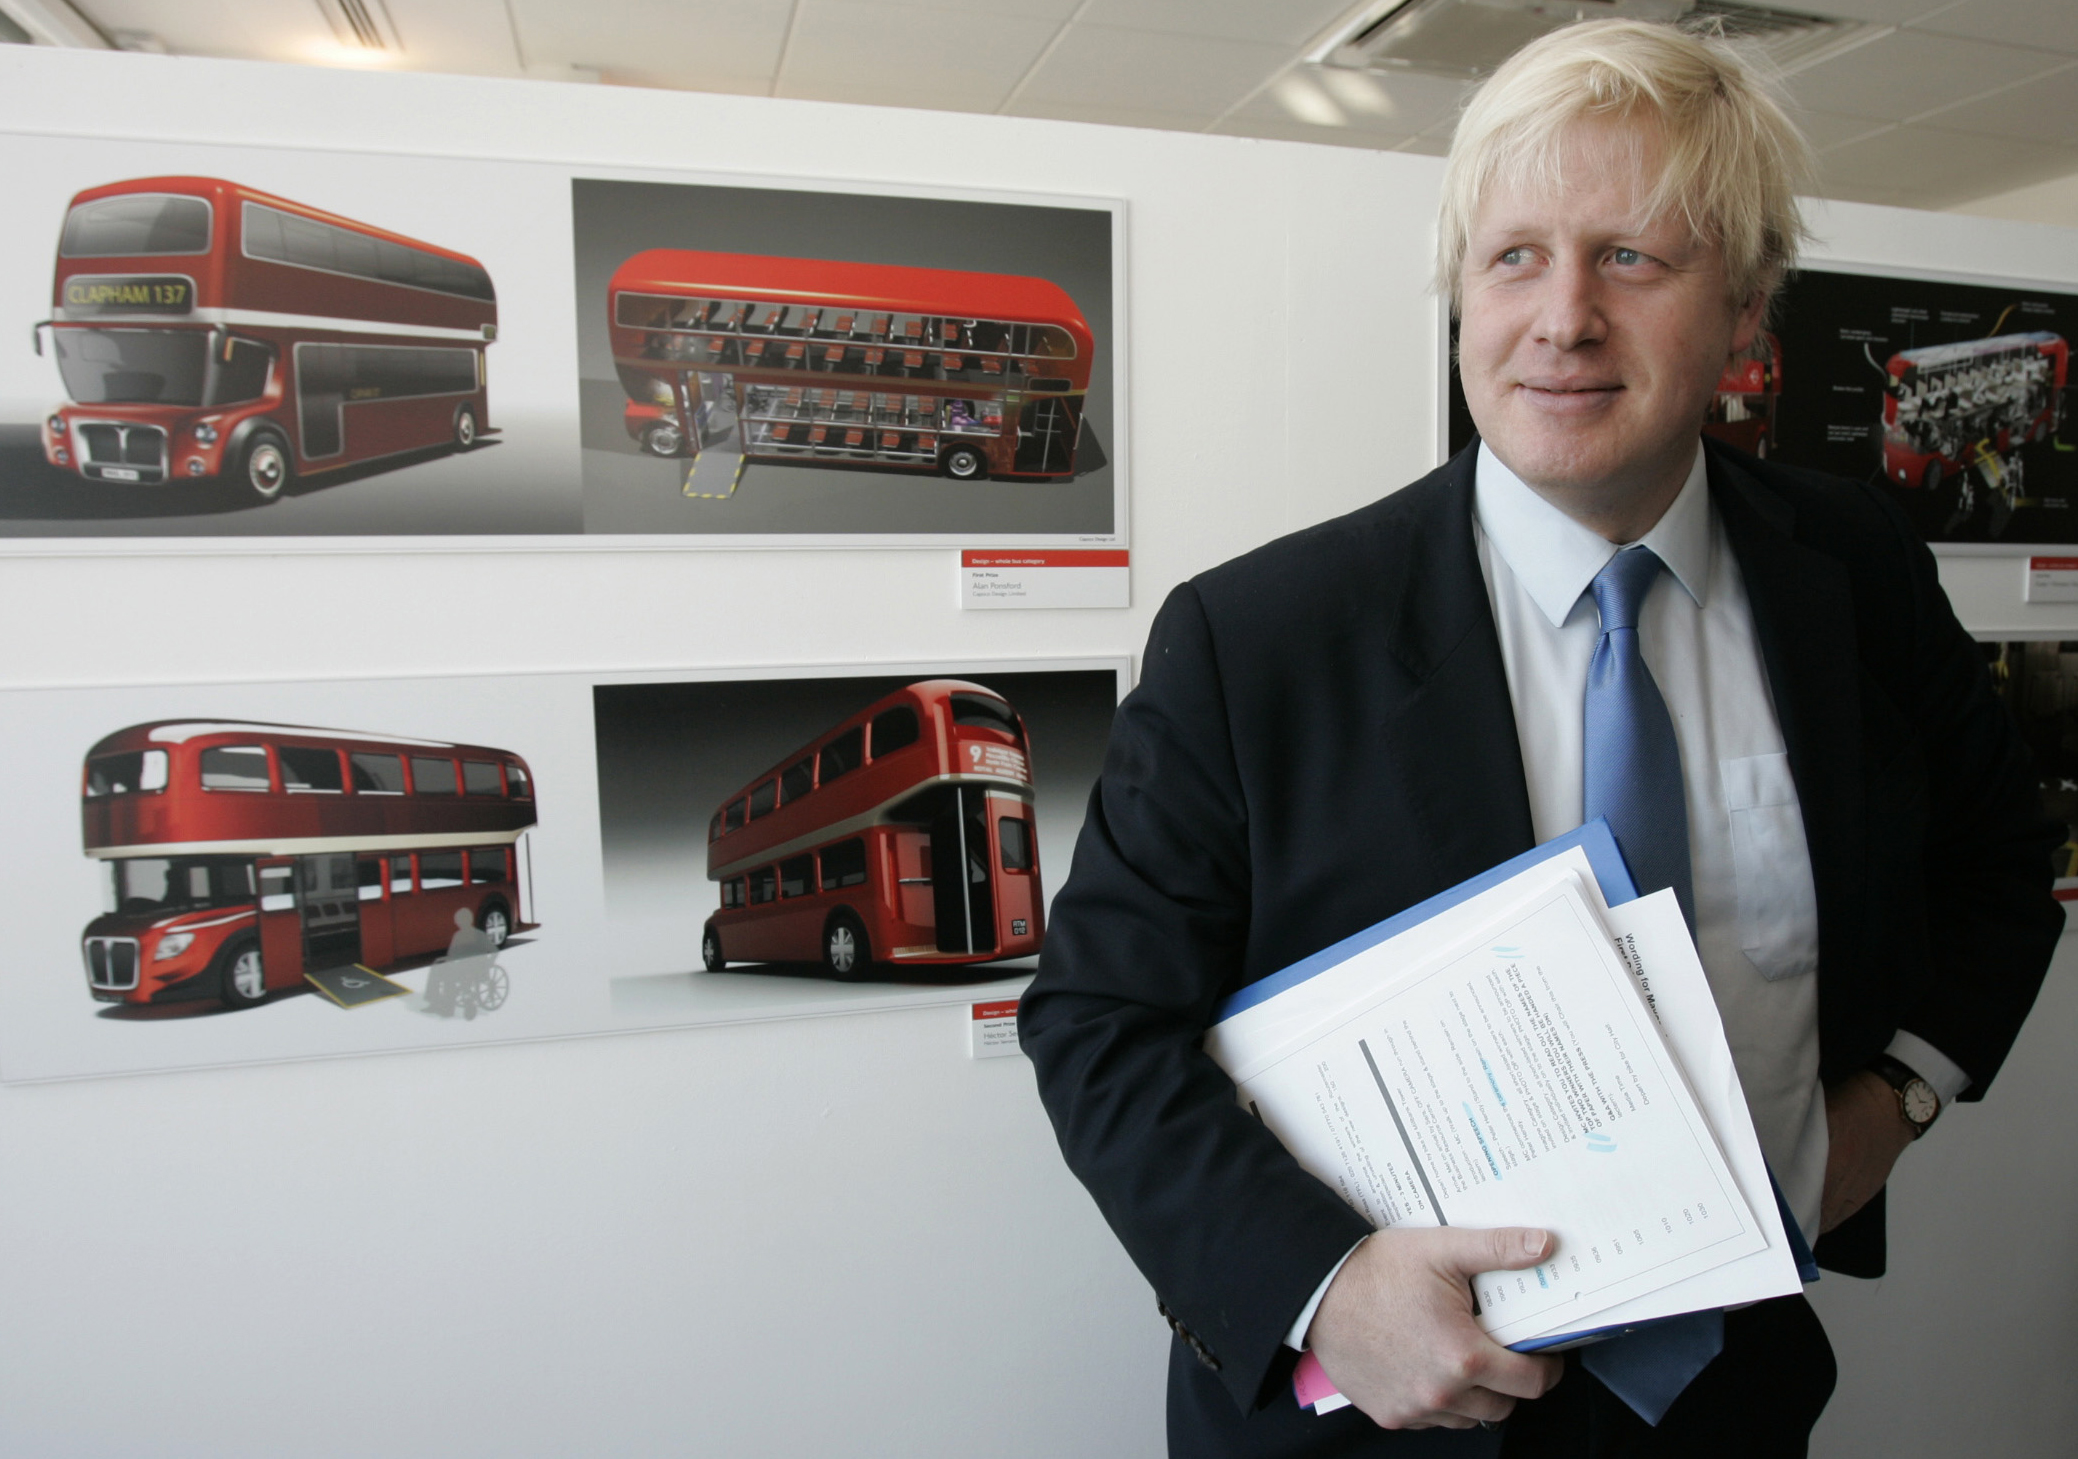 Boris Johnson claims he 'makes models of buses' and paints